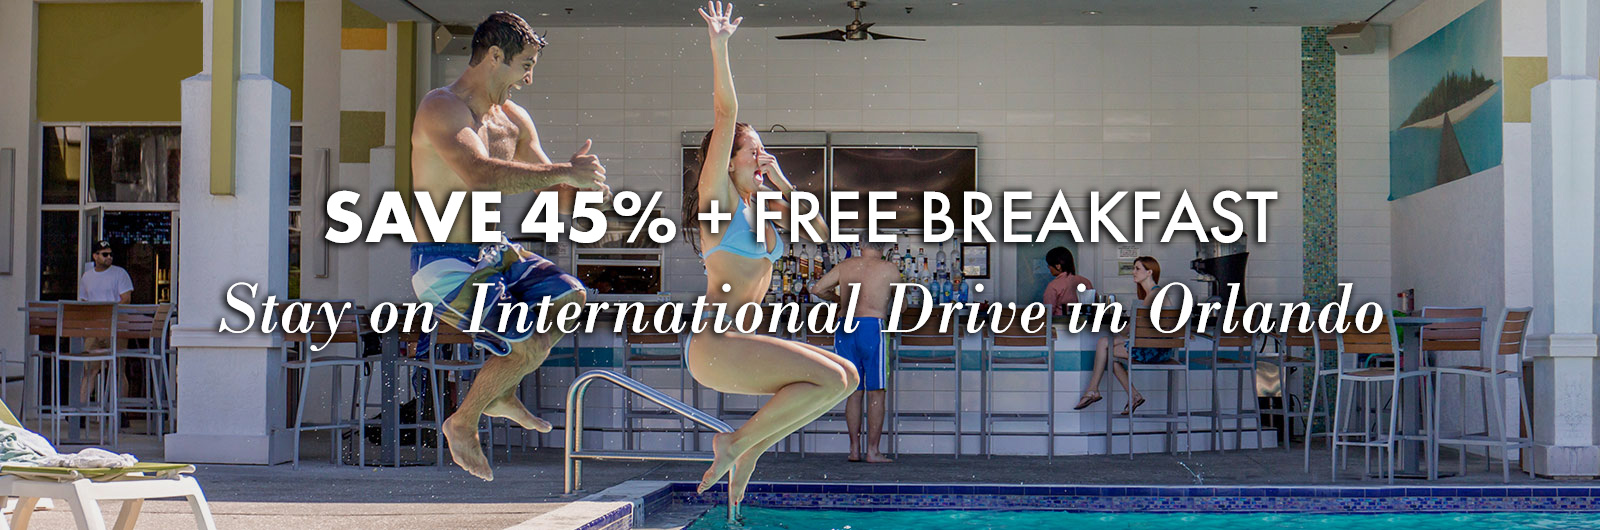 Save 45% + Free Breakfast | Stay on International Drive in Orlando